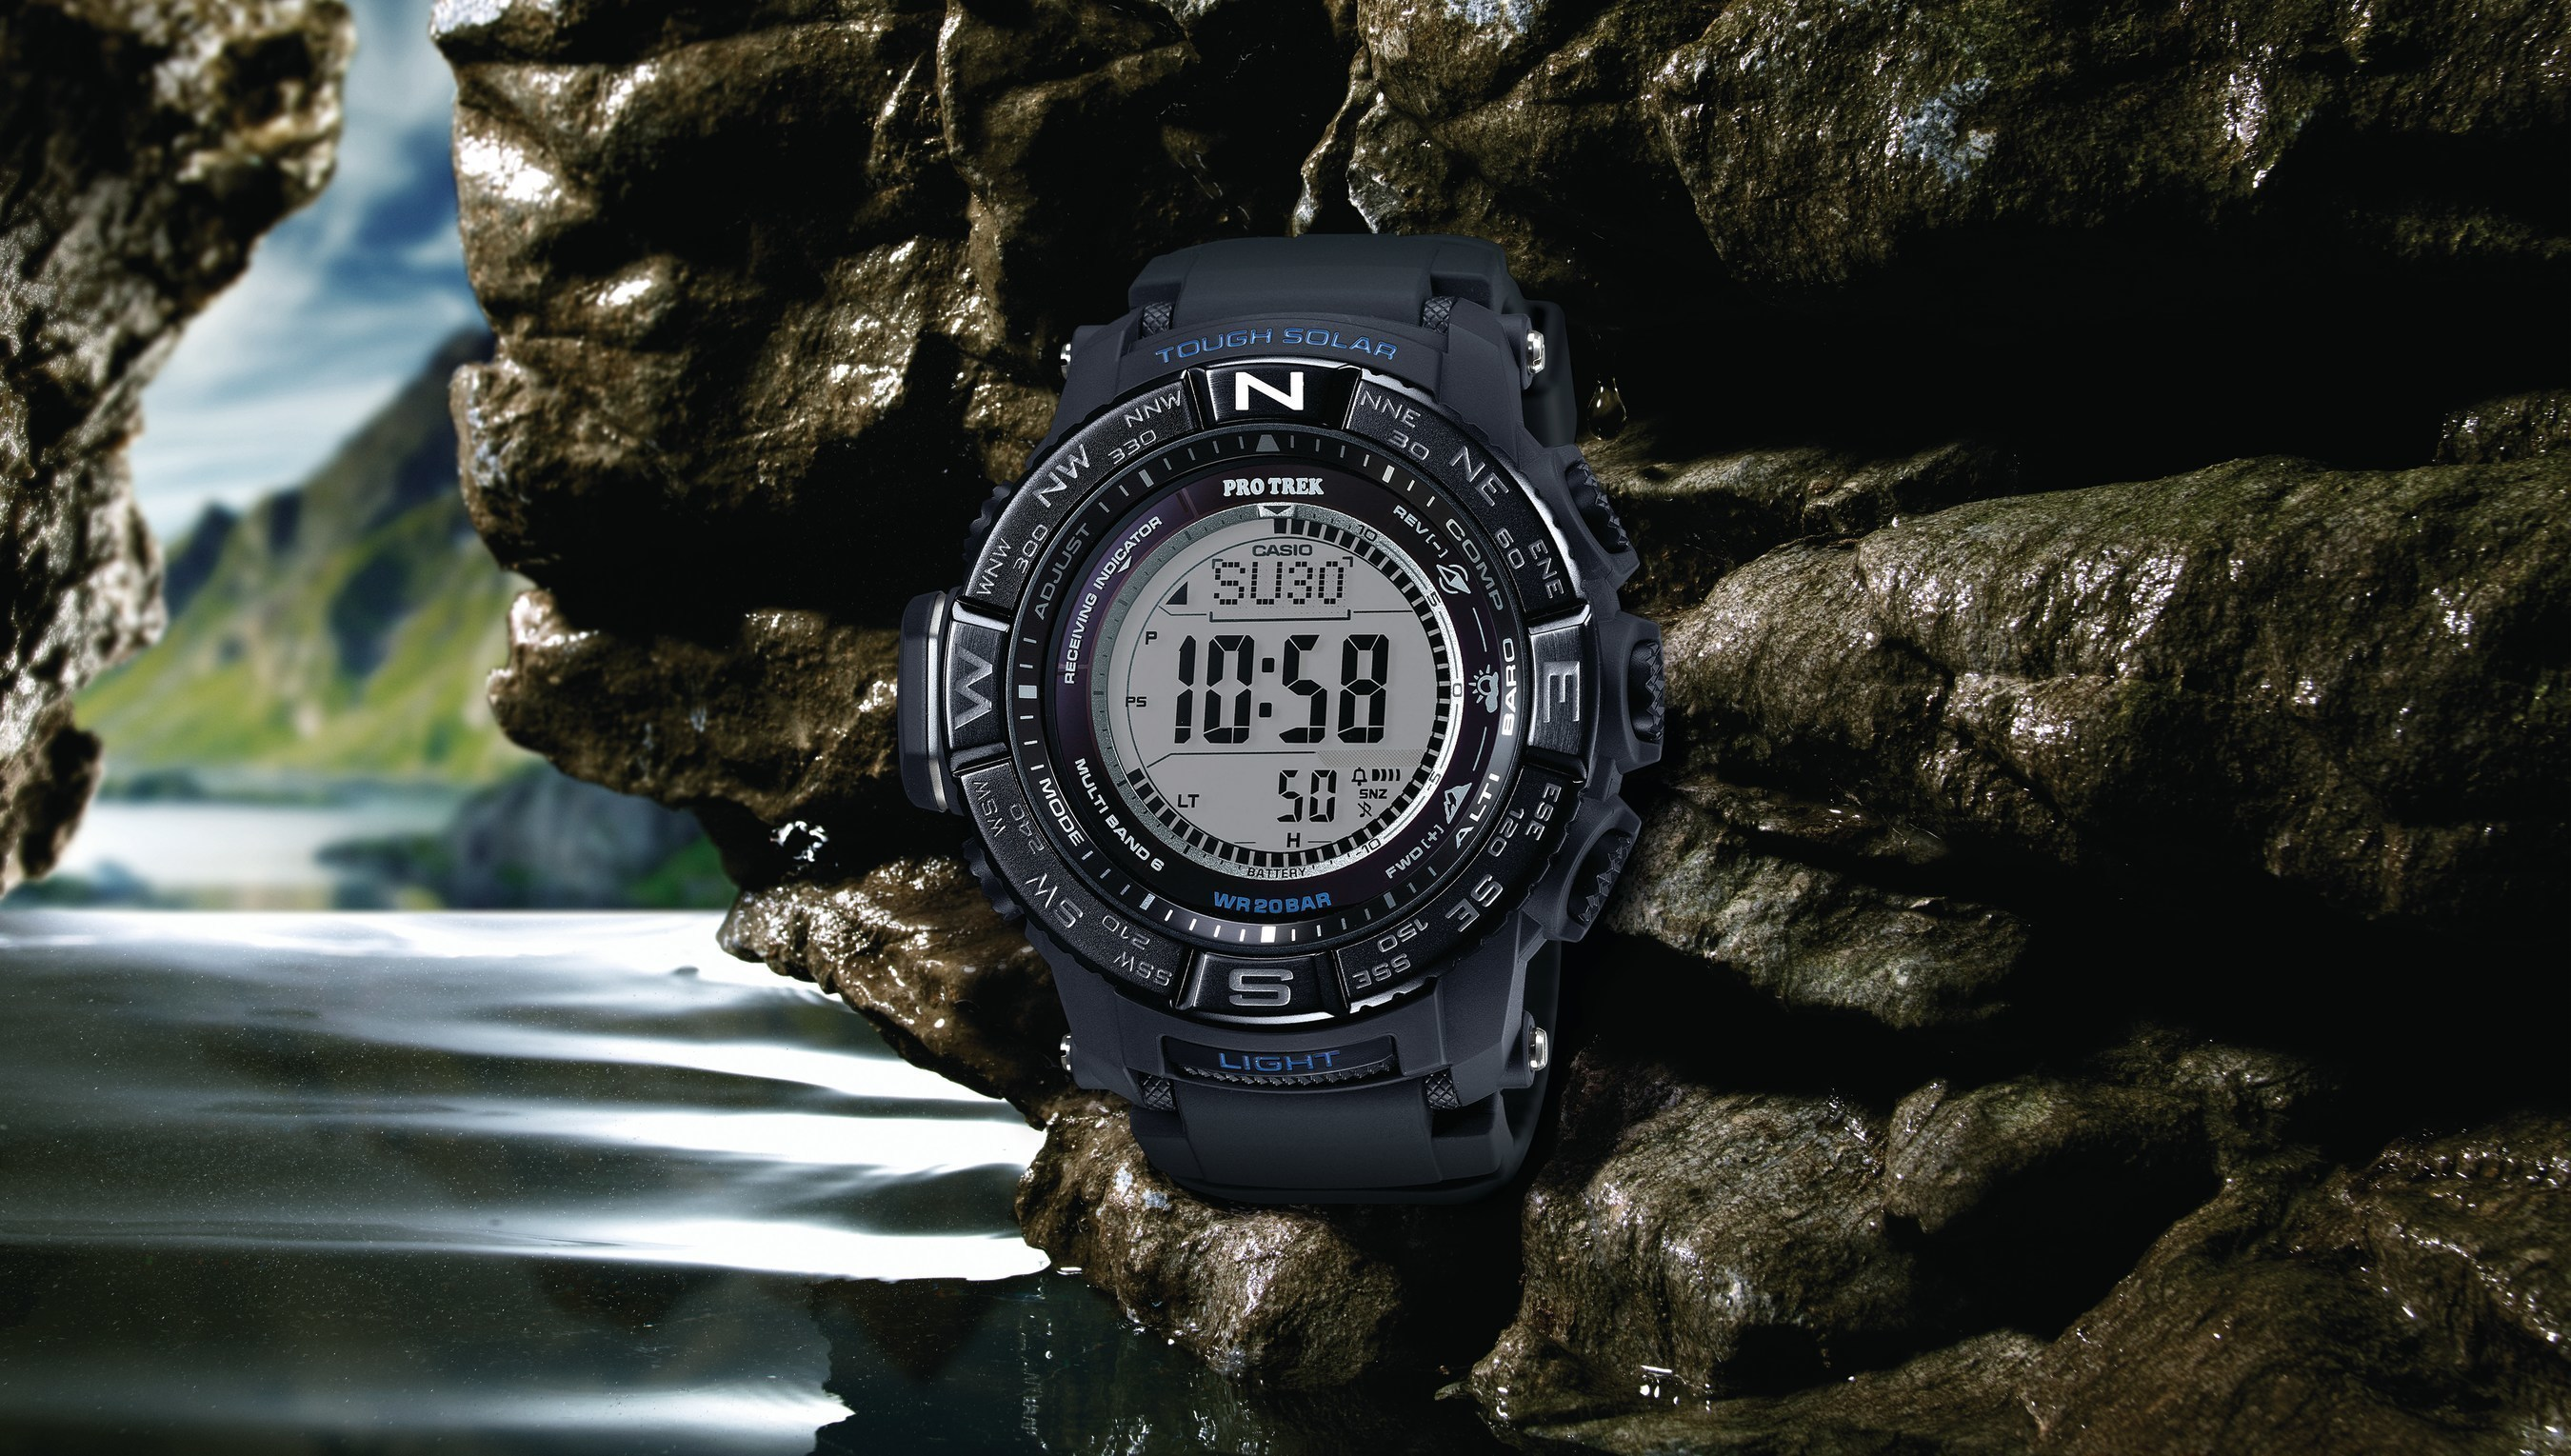 NEW CASIO PRO TREK TIMEPIECE OFFERS ENHANCED FEATURES FOR OUTDOOR ENTHUSIASTS